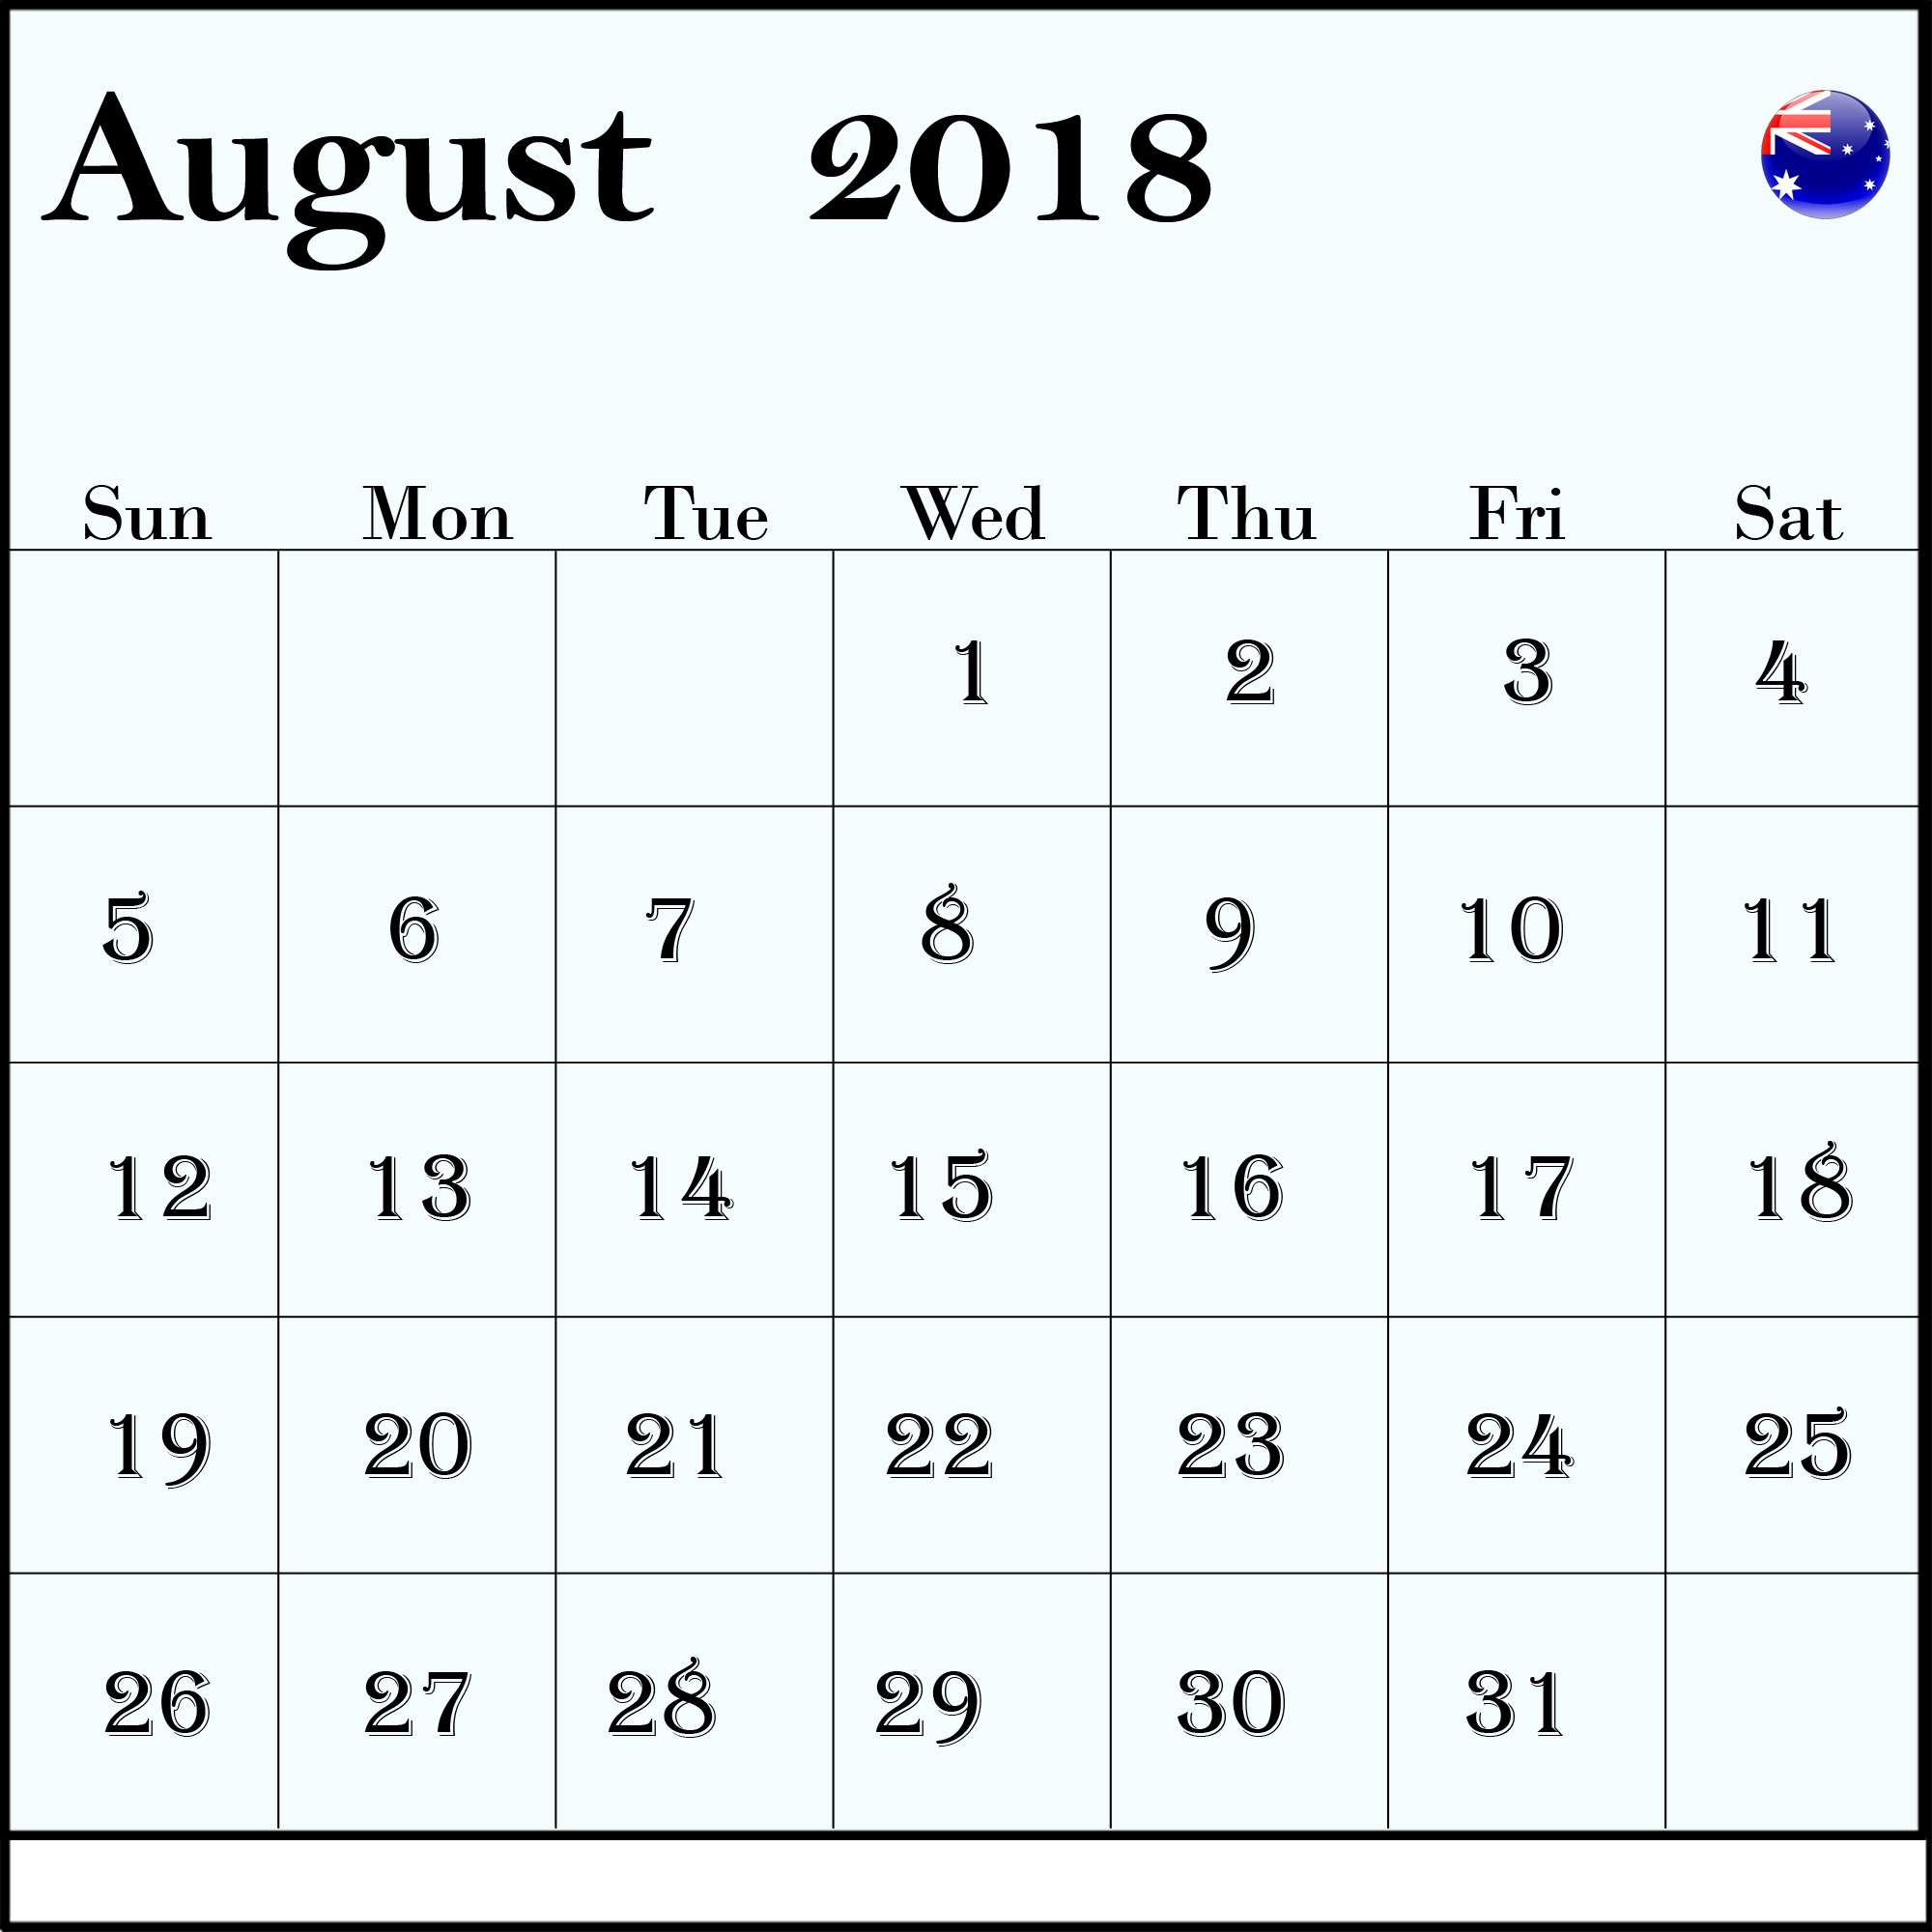 August 2018 Calendar Australia With Holidays Bank and Public